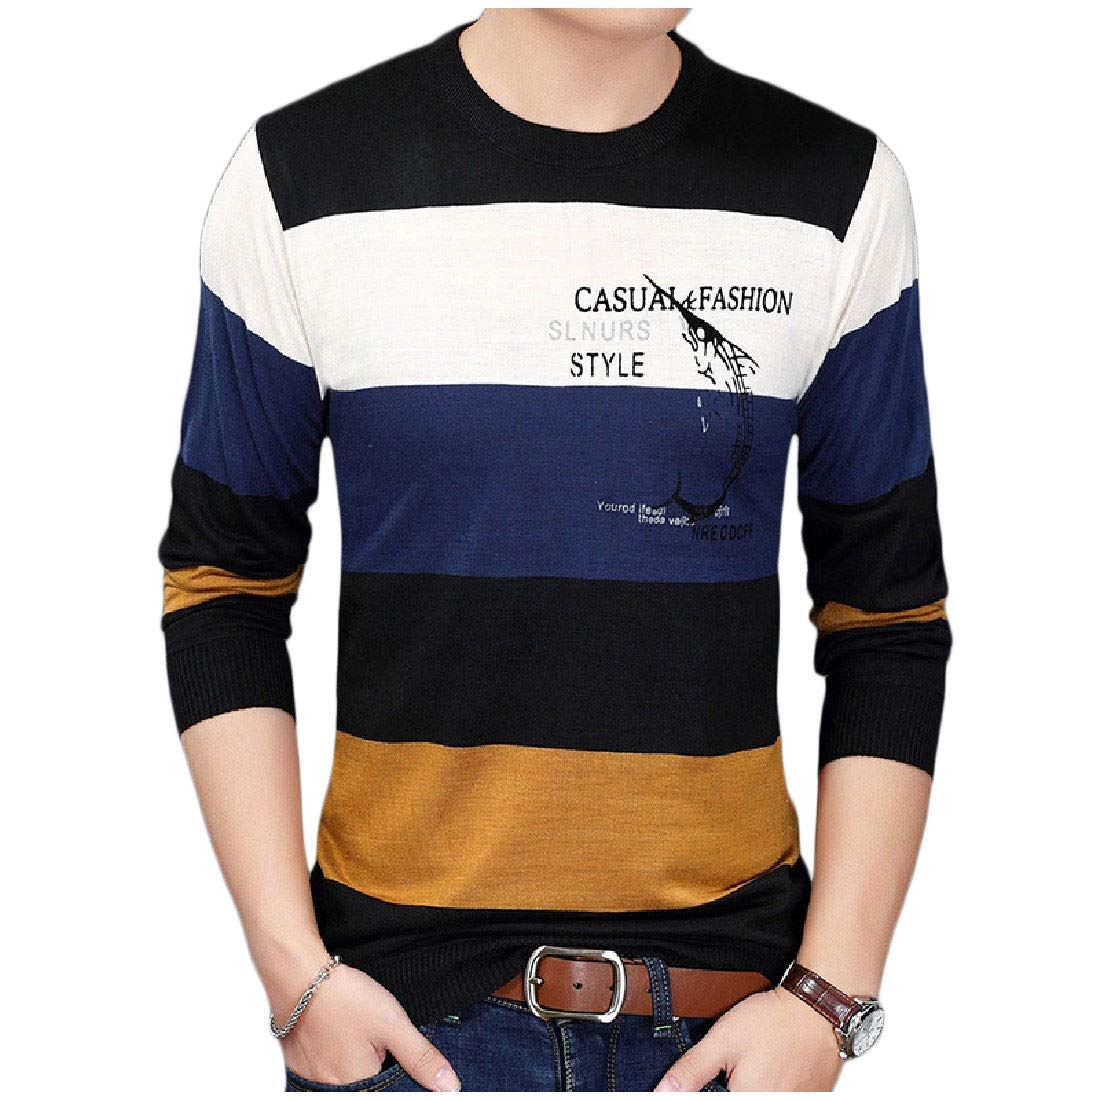 YUNY Mens Scoop Neck Casual Long-Sleeve Pullover Knit Top Shirt T-Shirt Navy Blue XS